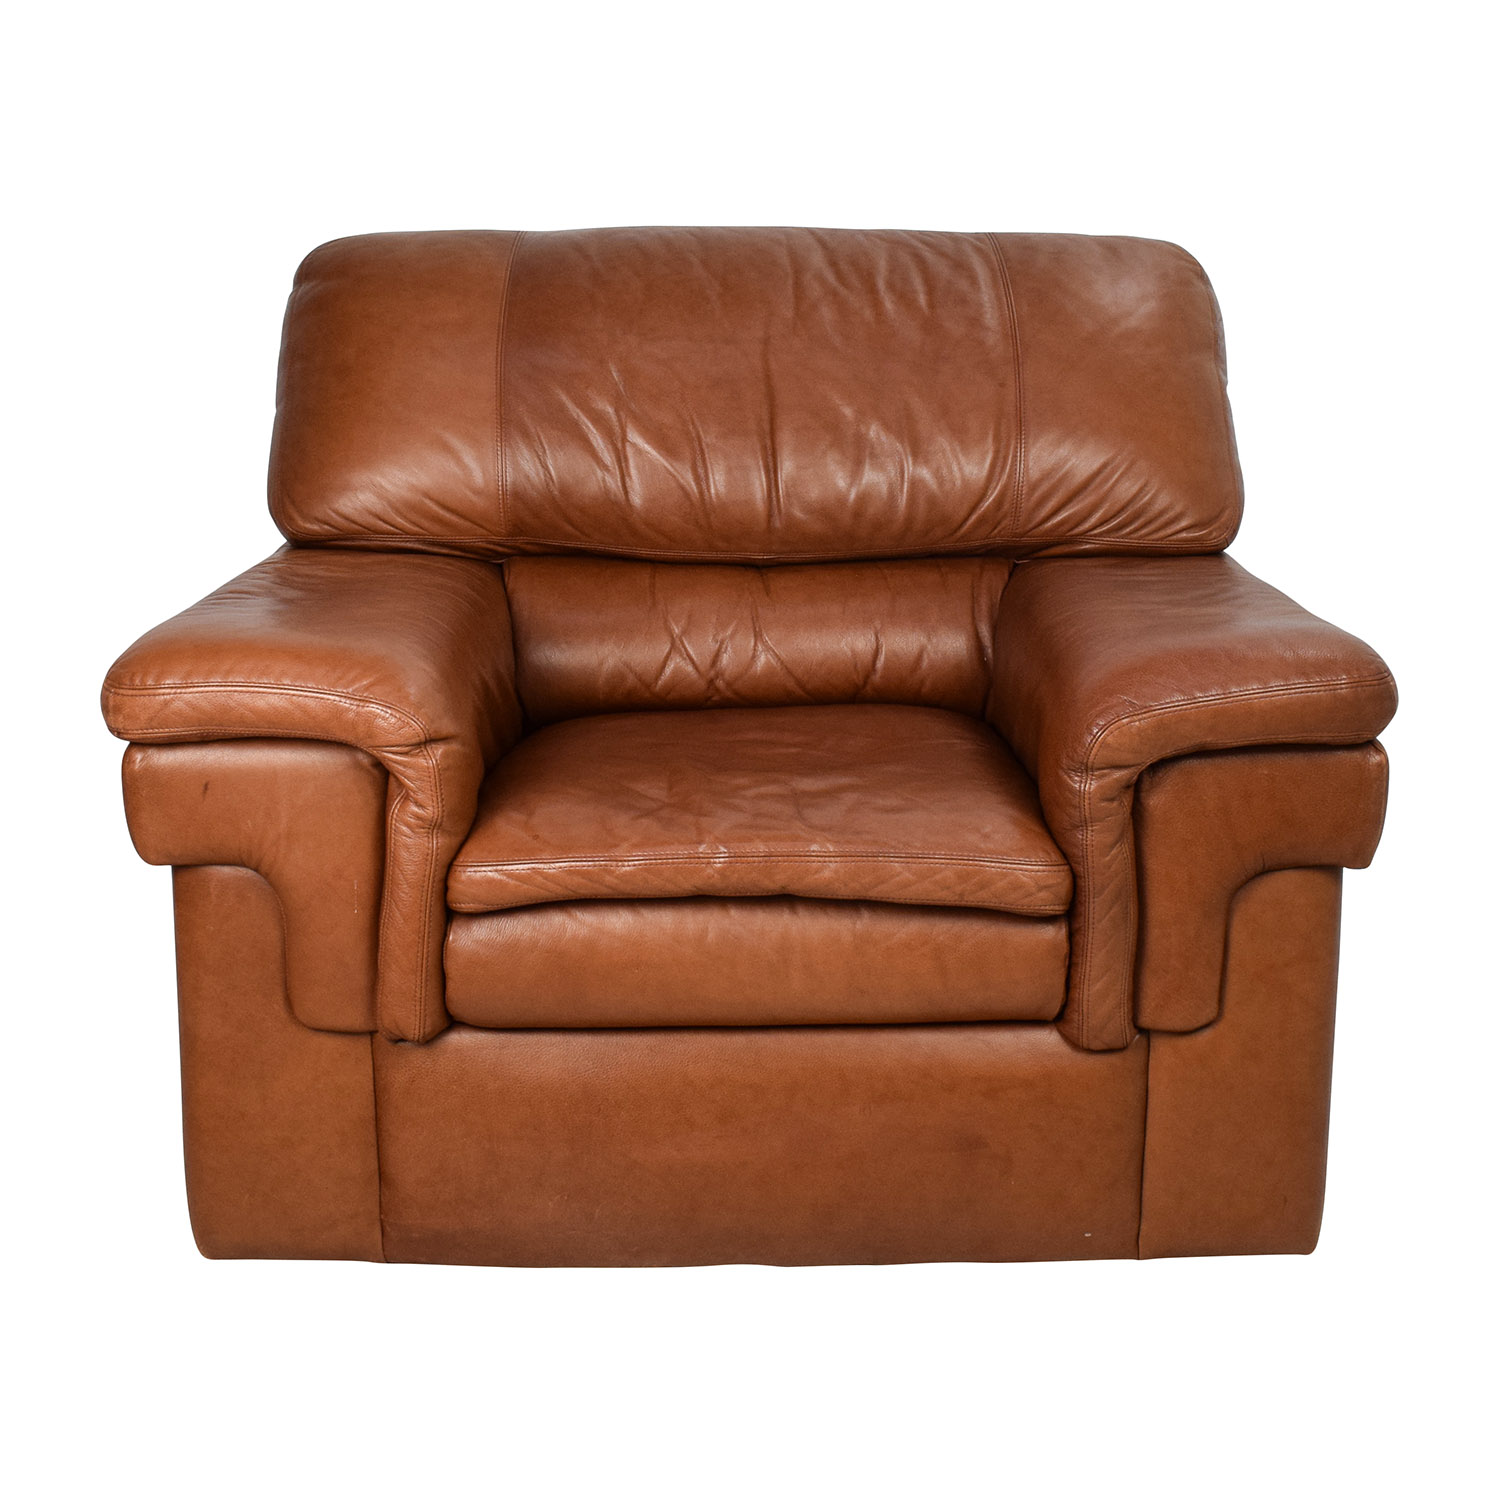 Classic Cherry Brown Leather Armchair Brown